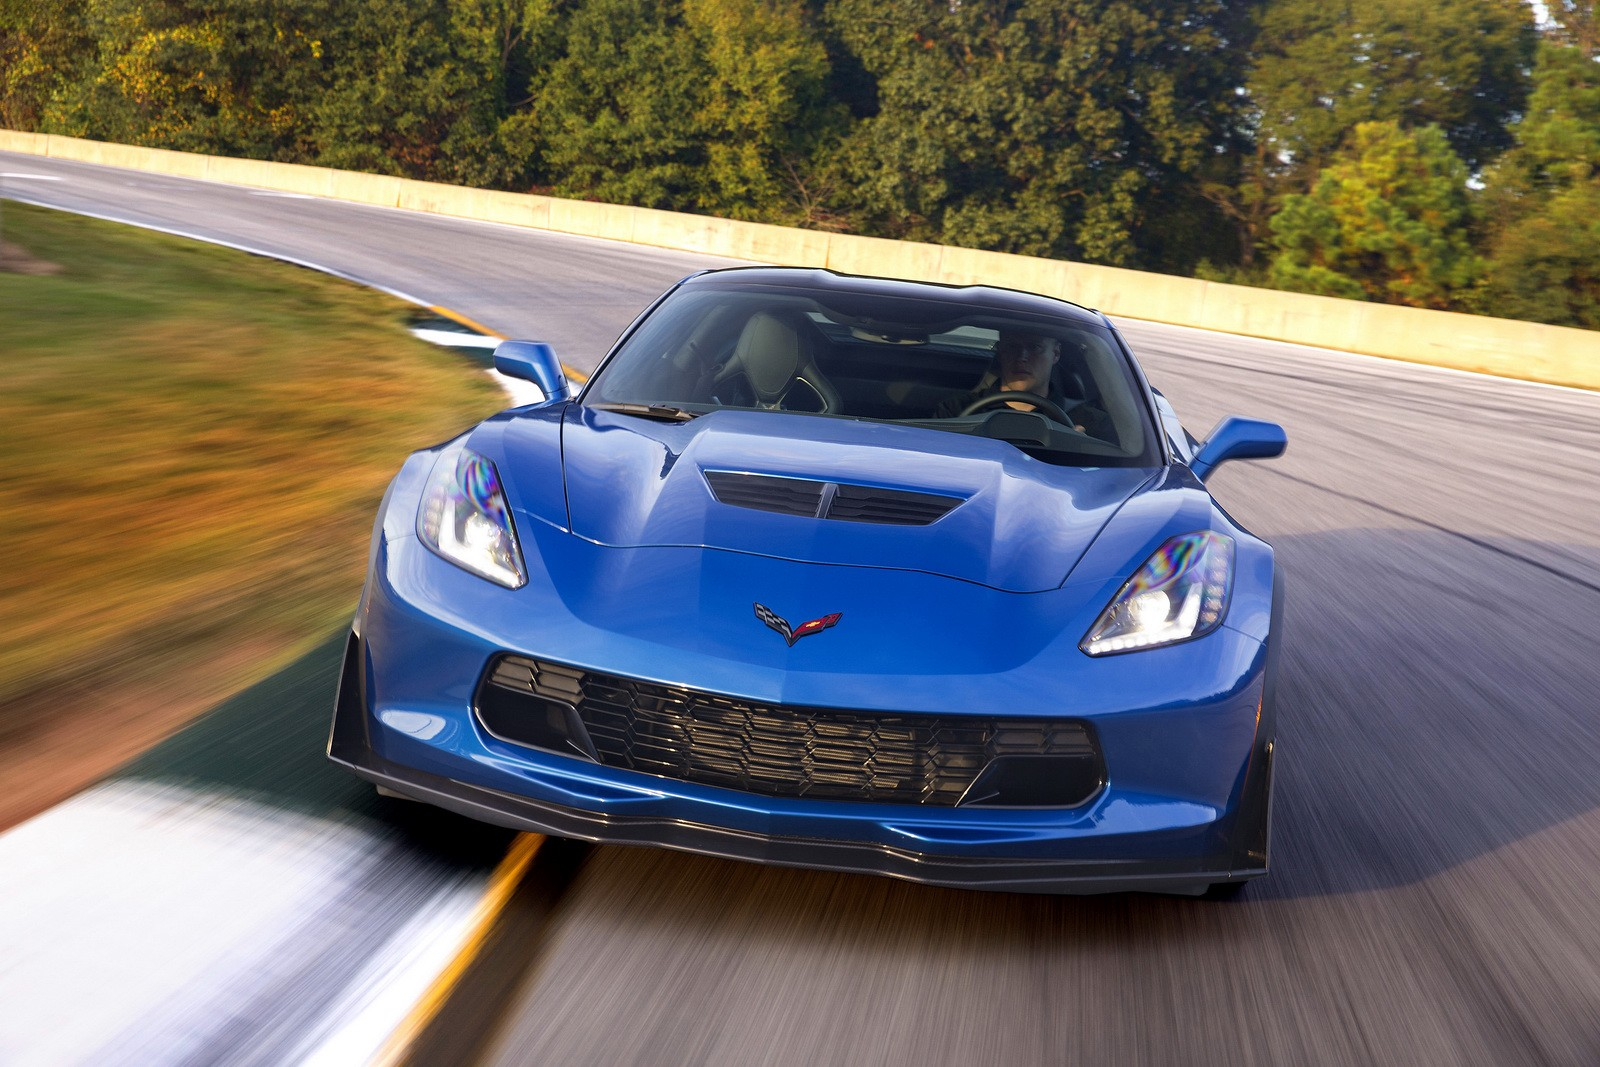 Corvette C7 Zr1 >> 2015 Chevrolet Corvette Z06 Gets Priced for Europe - autoevolution